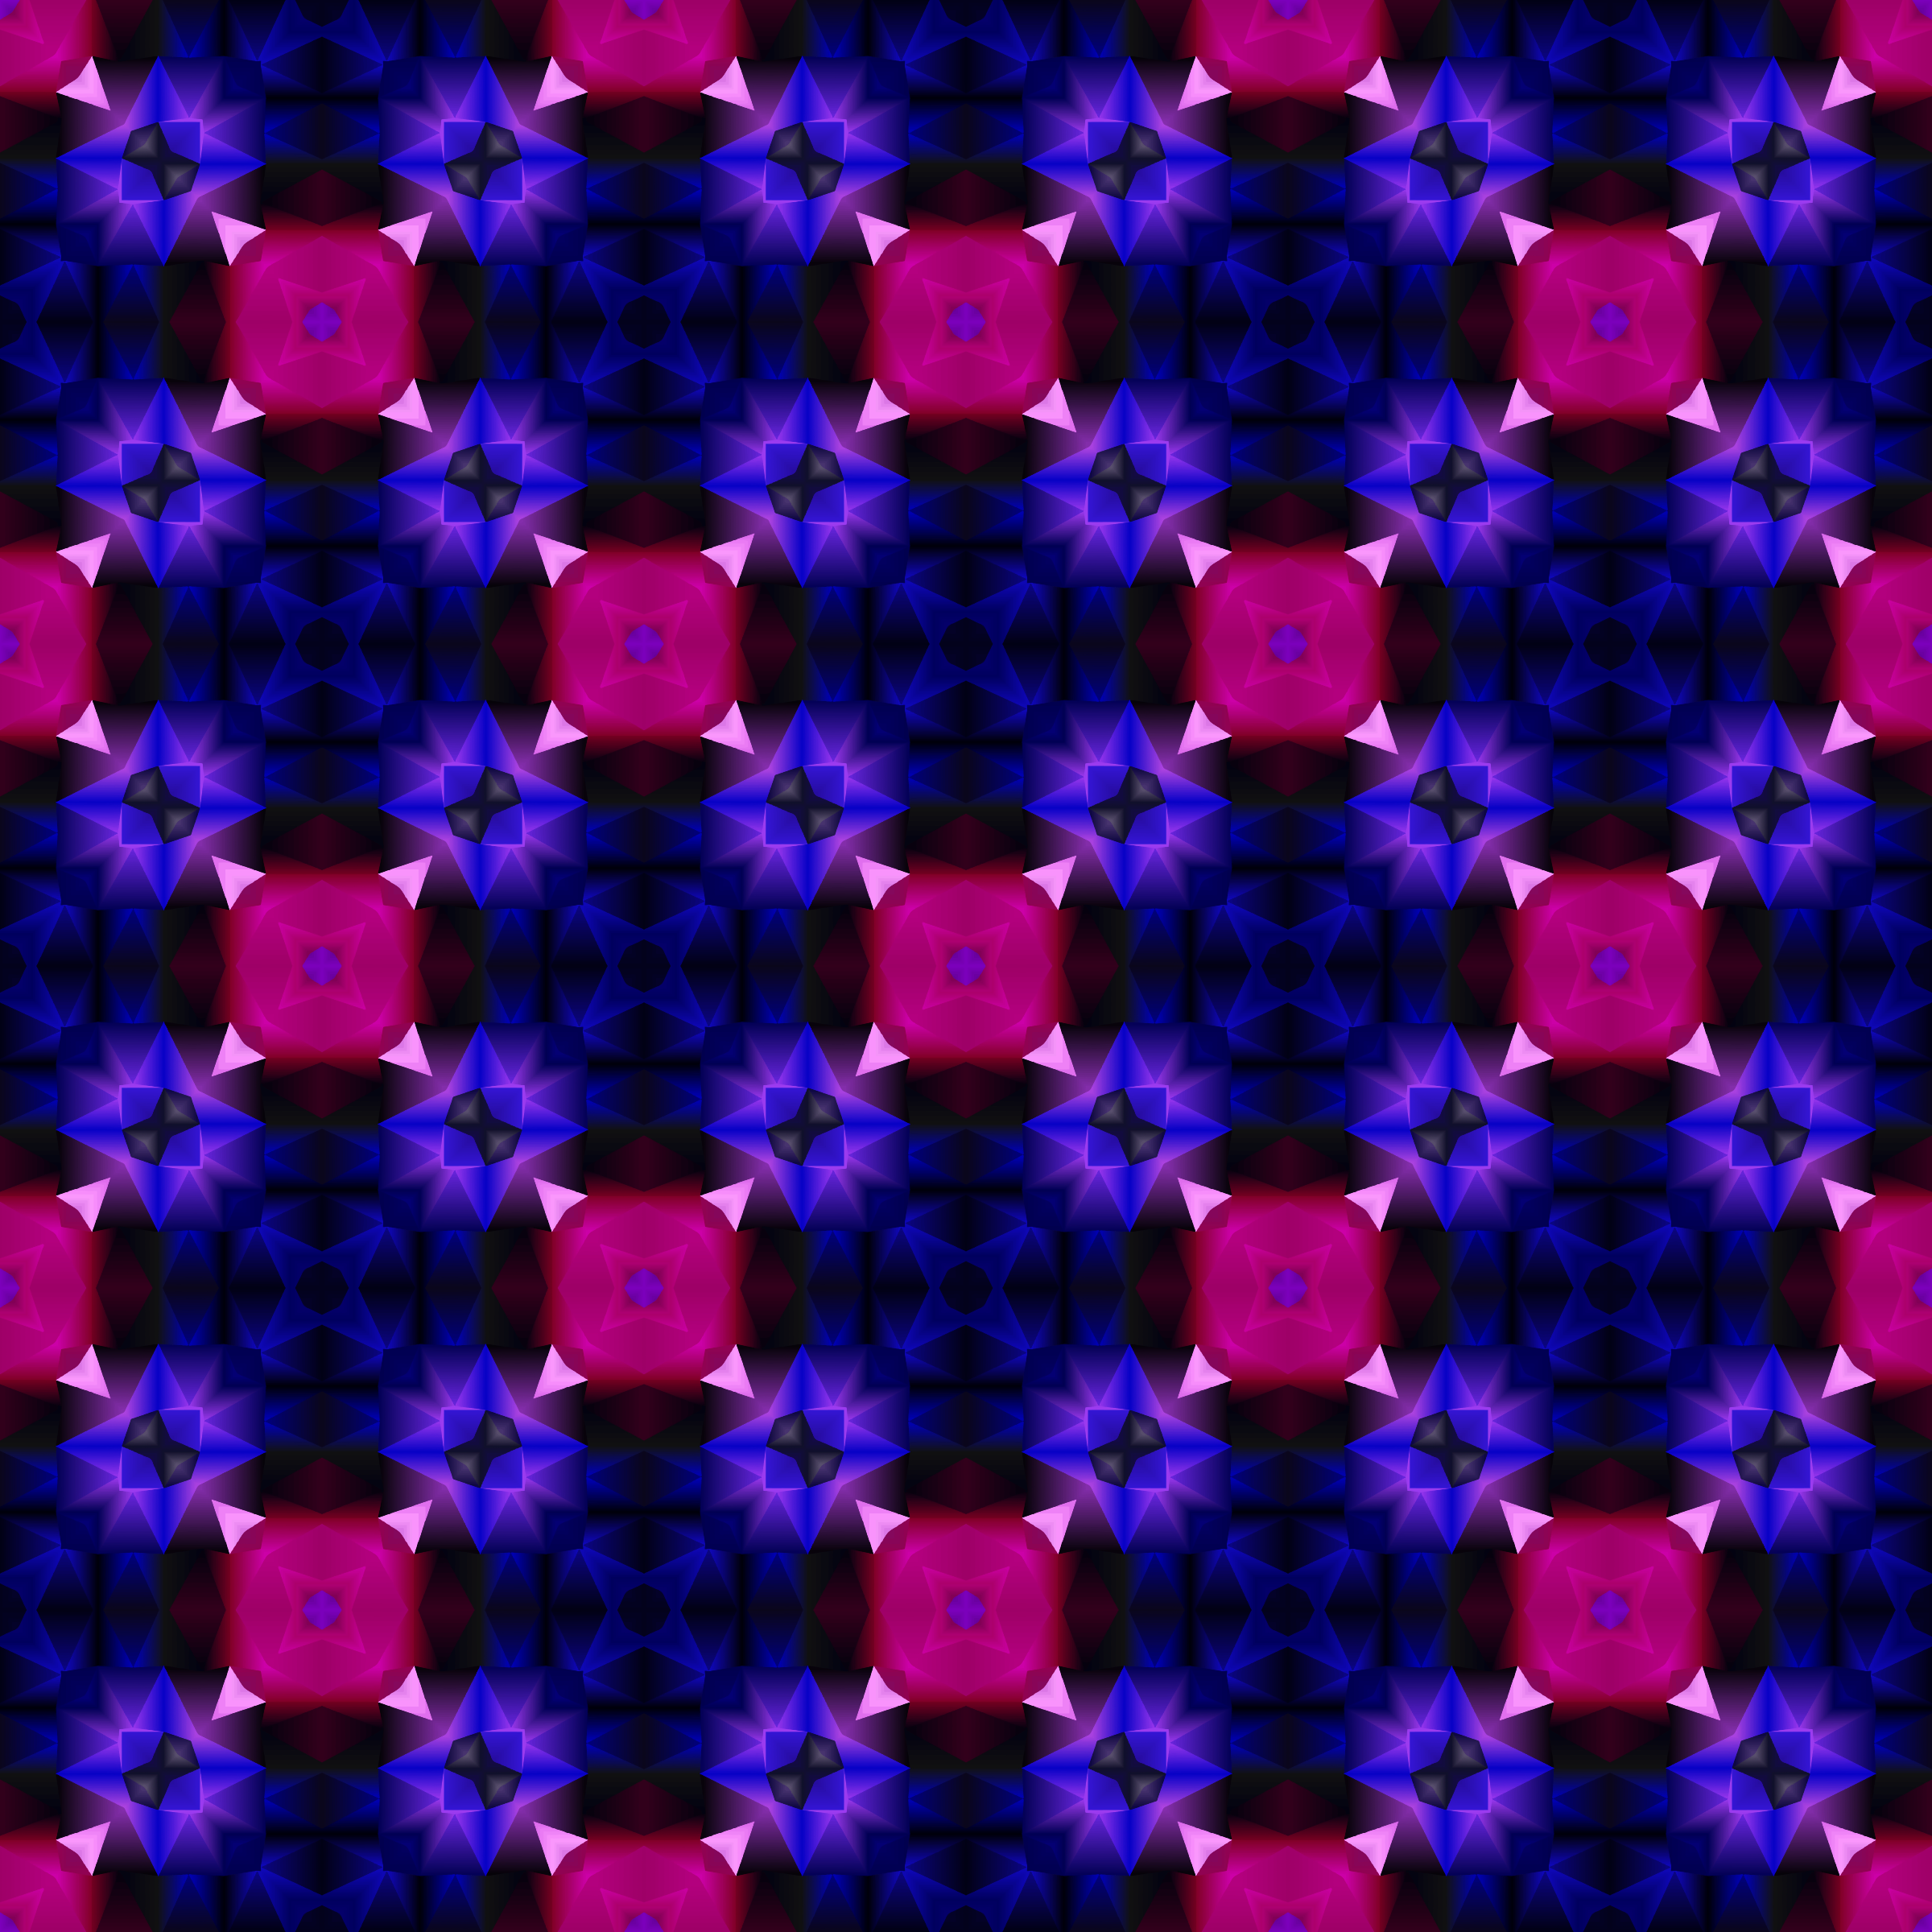 Background pattern 140 (colour 3) by Firkin